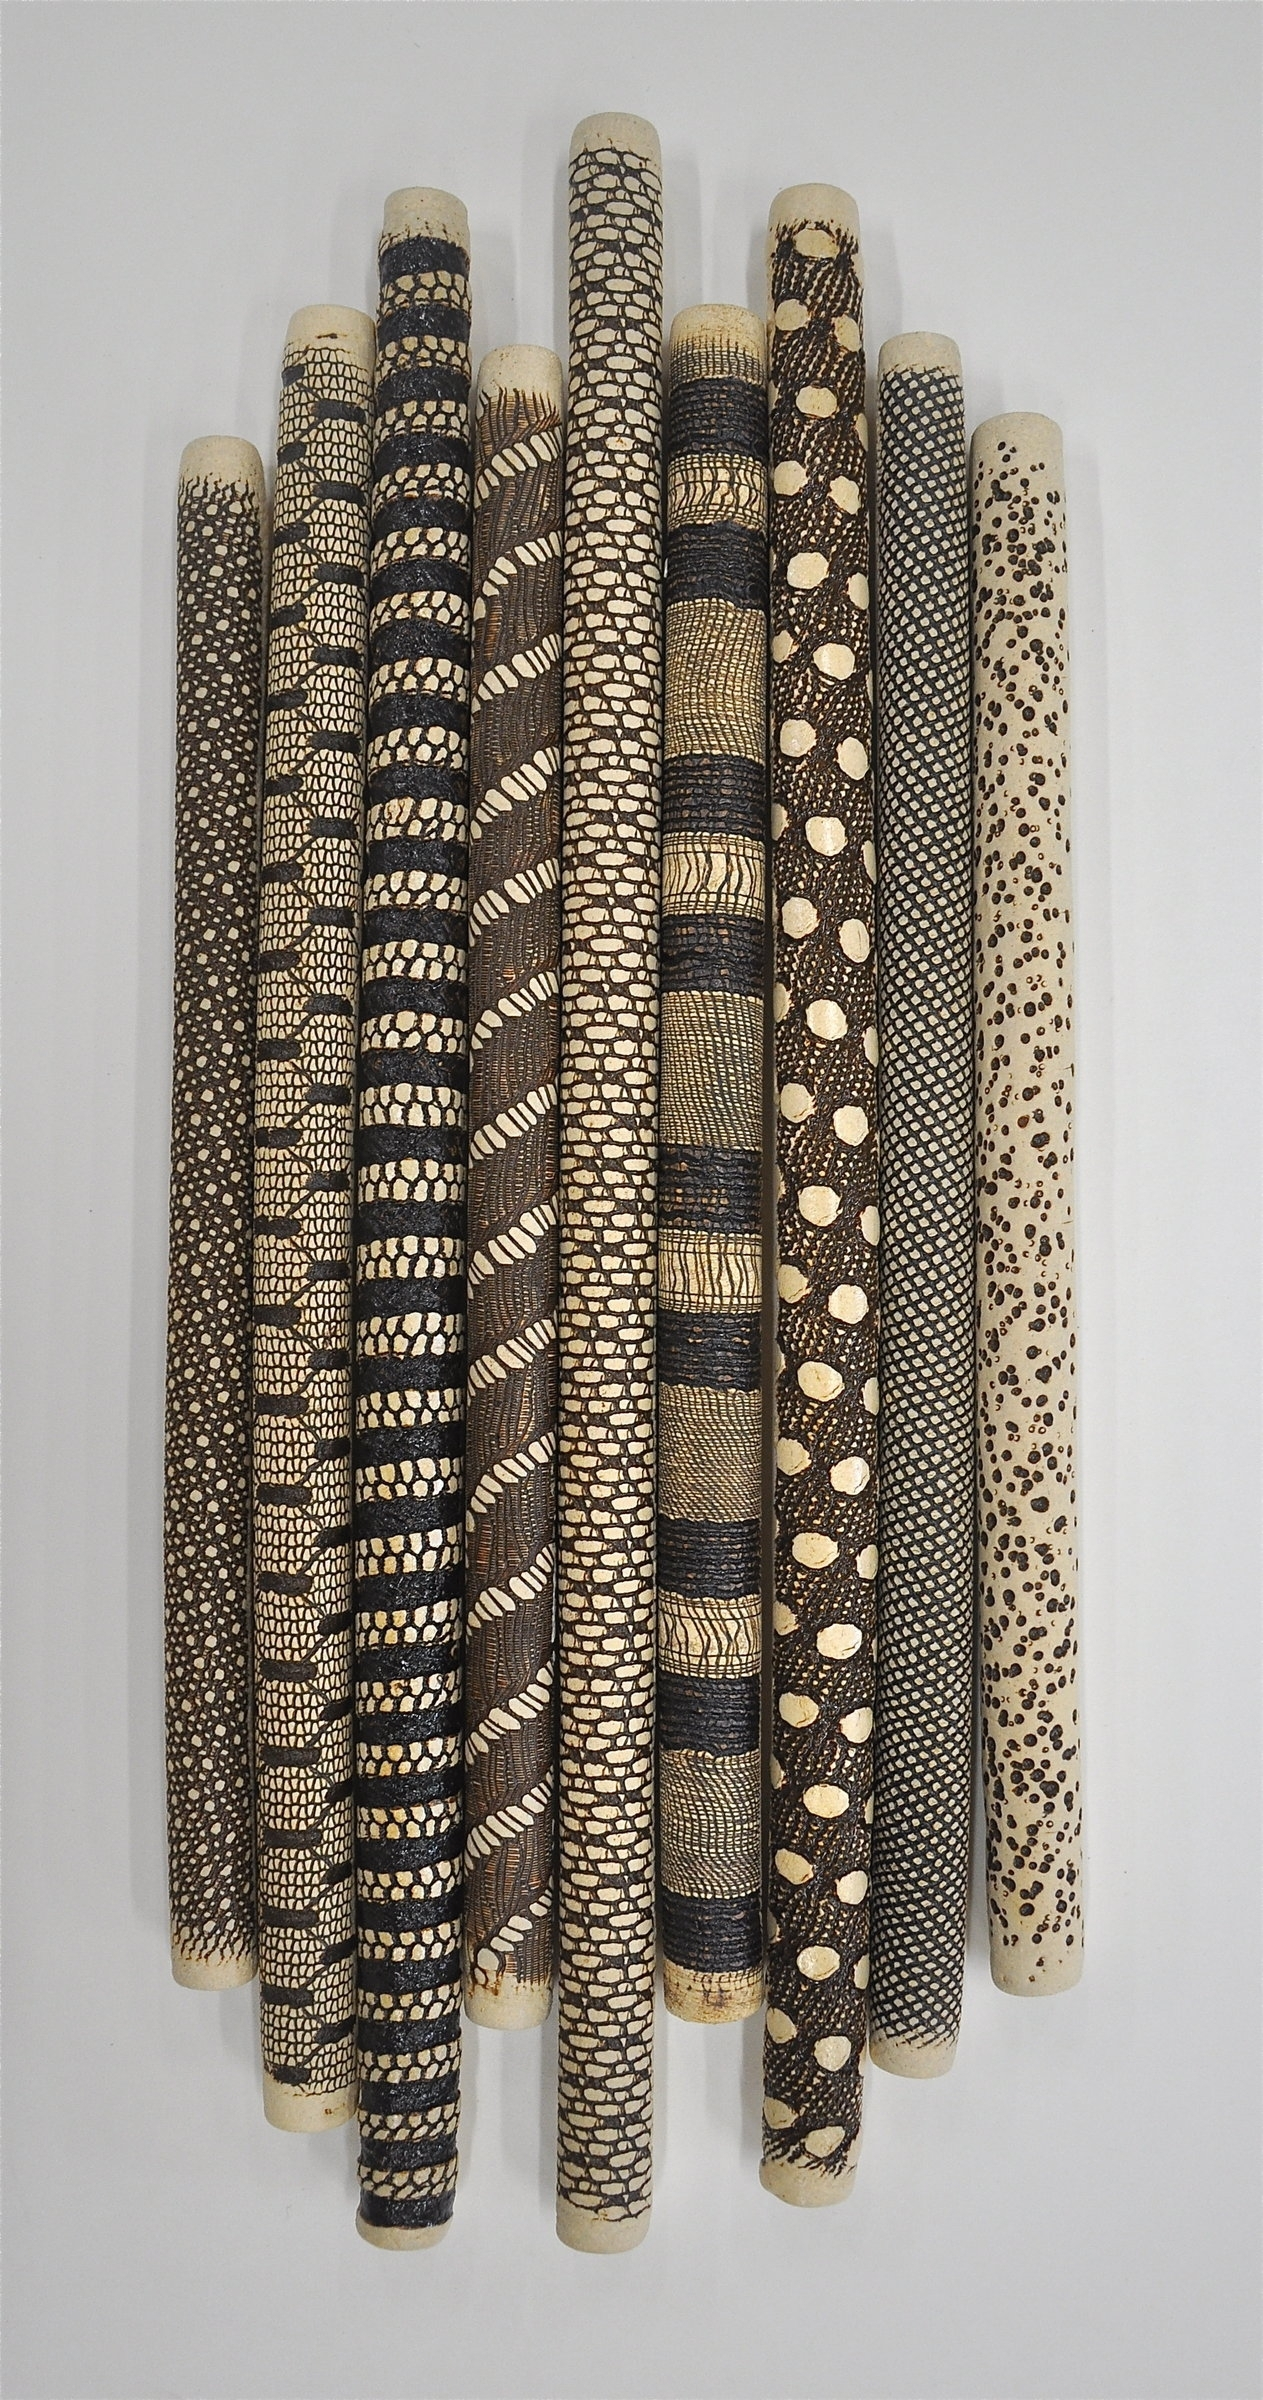 9 Piece Installationkelly Jean Ohl (Ceramic Wall Sculpture Regarding Most Recent Ceramic Wall Art (Gallery 1 of 20)